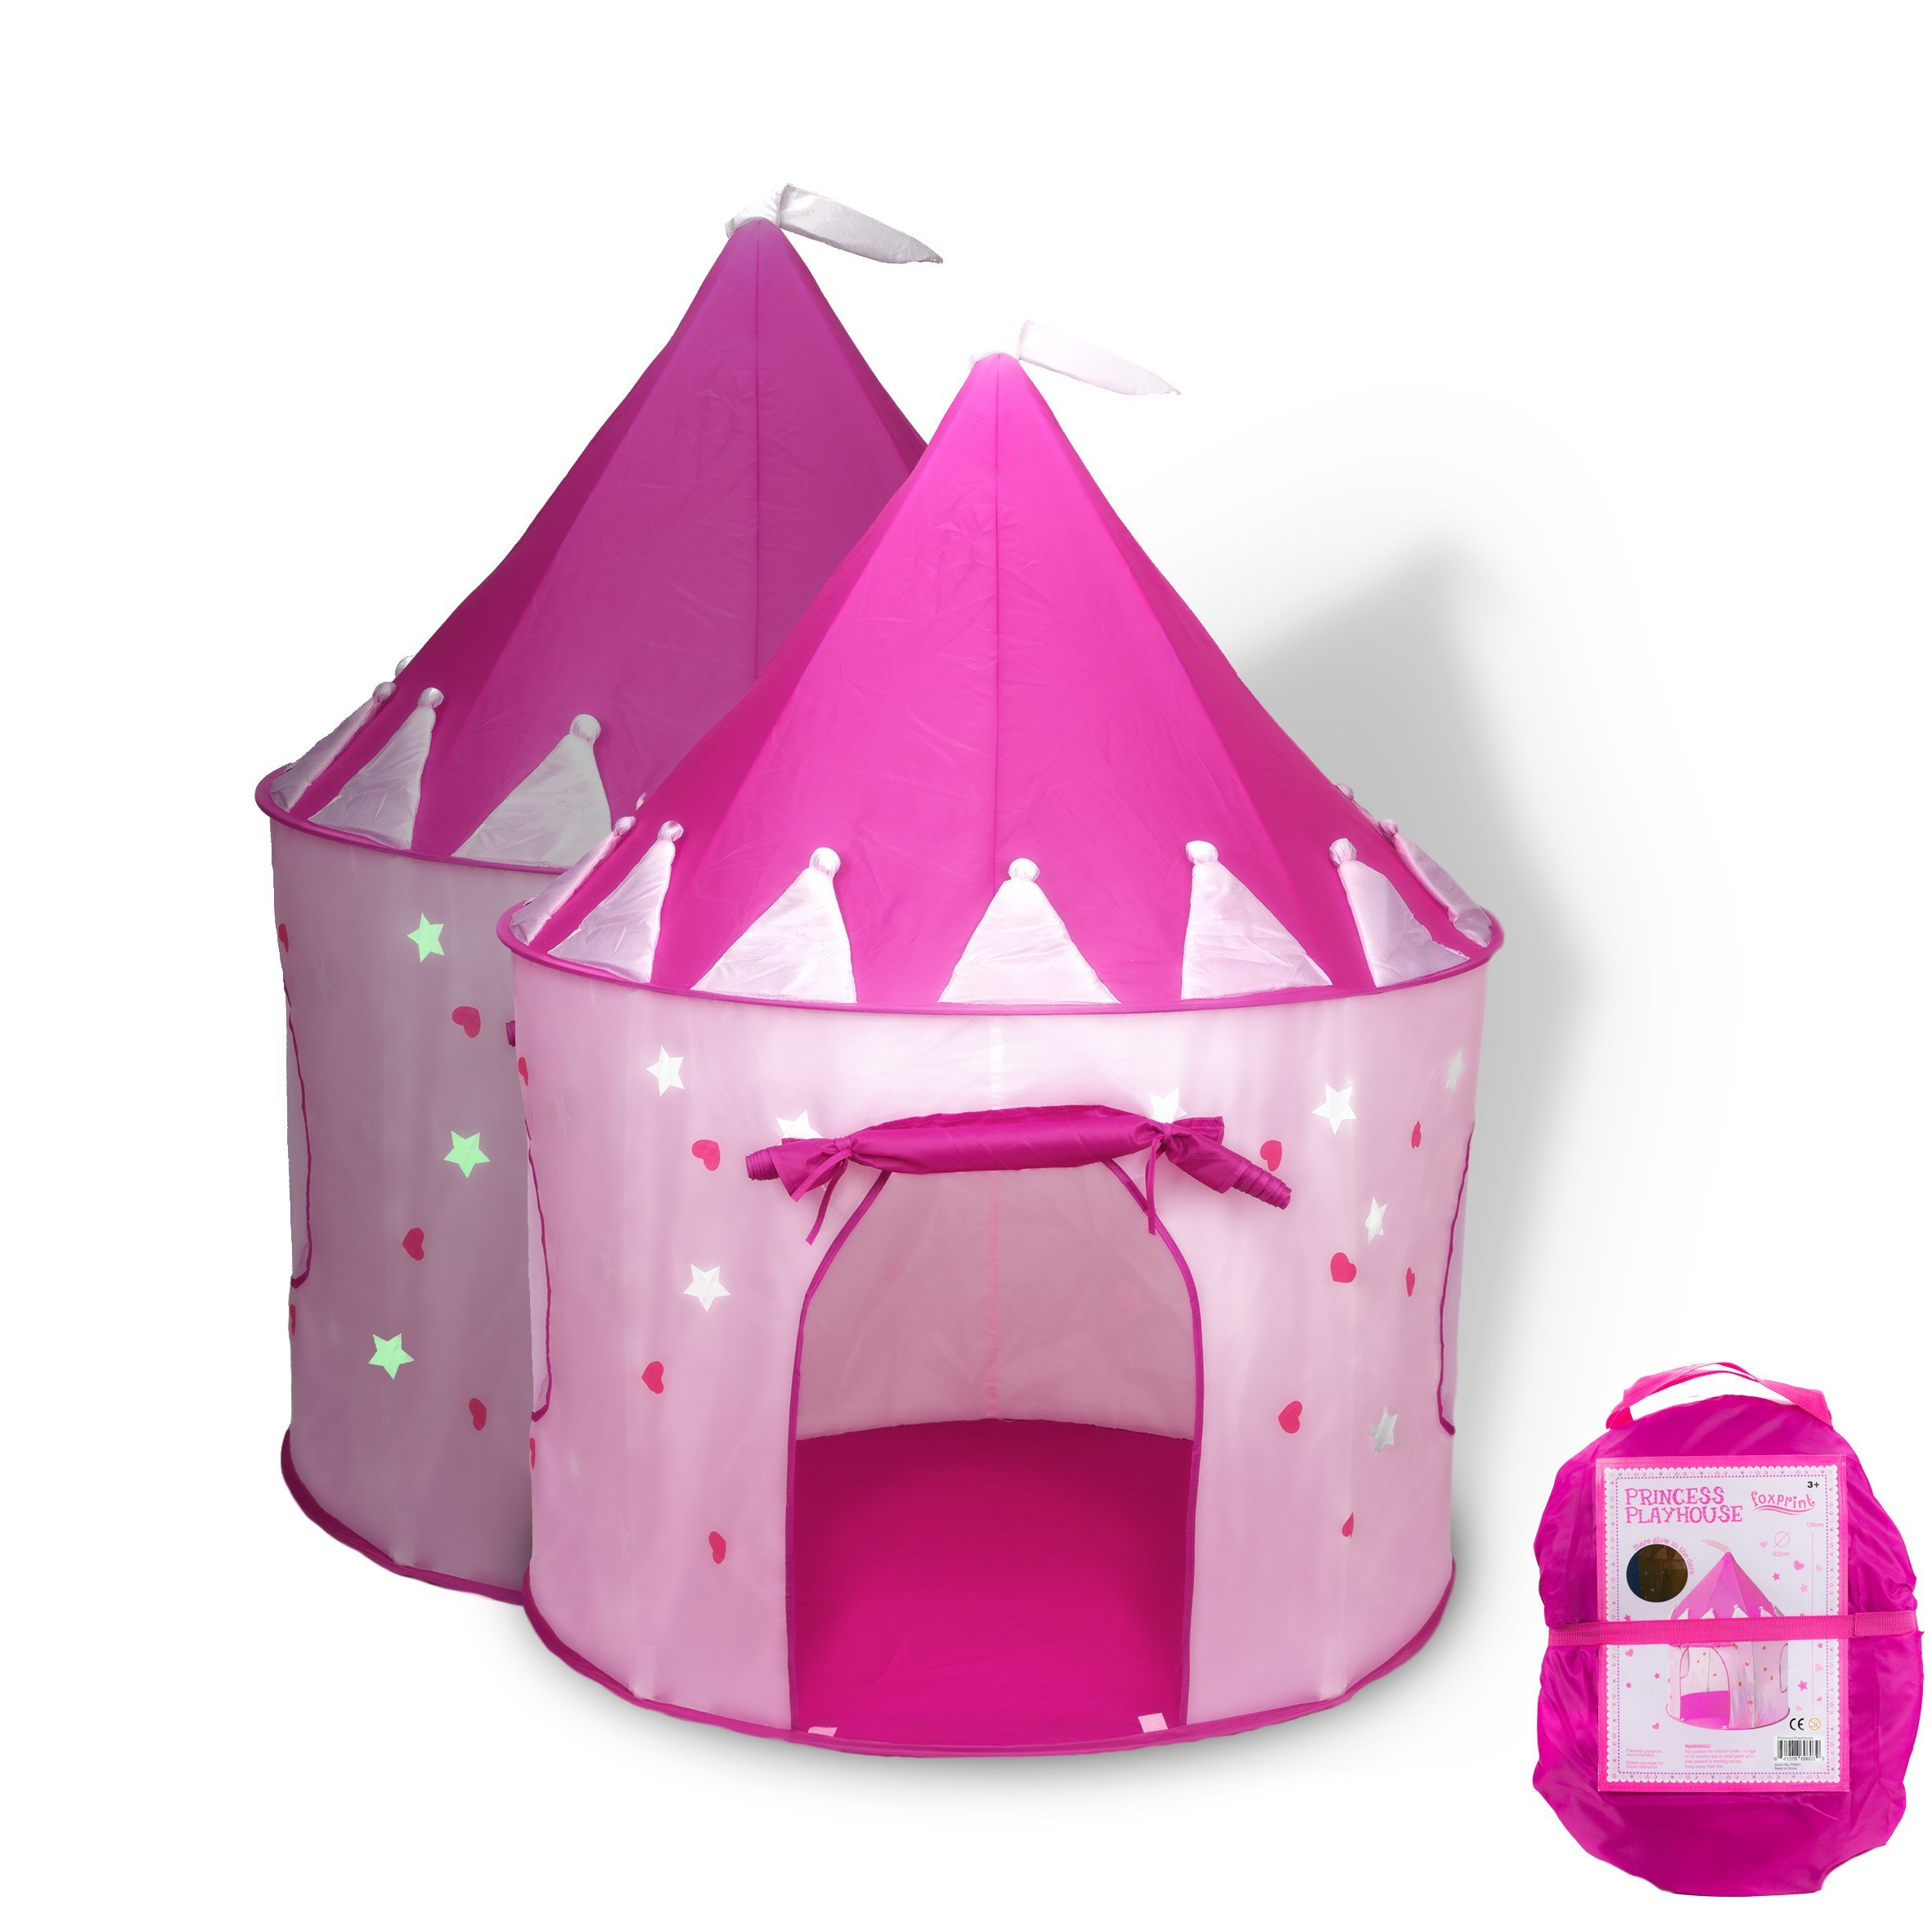 FoxPrint Princess Castle Play Tent with Glow in The Dark Stars Conveniently Folds in to A Carrying Case Your Kids Will Enjoy This Foldable Pop Up Pink Play Tent/House Toy for Indoor & Outdoor Use